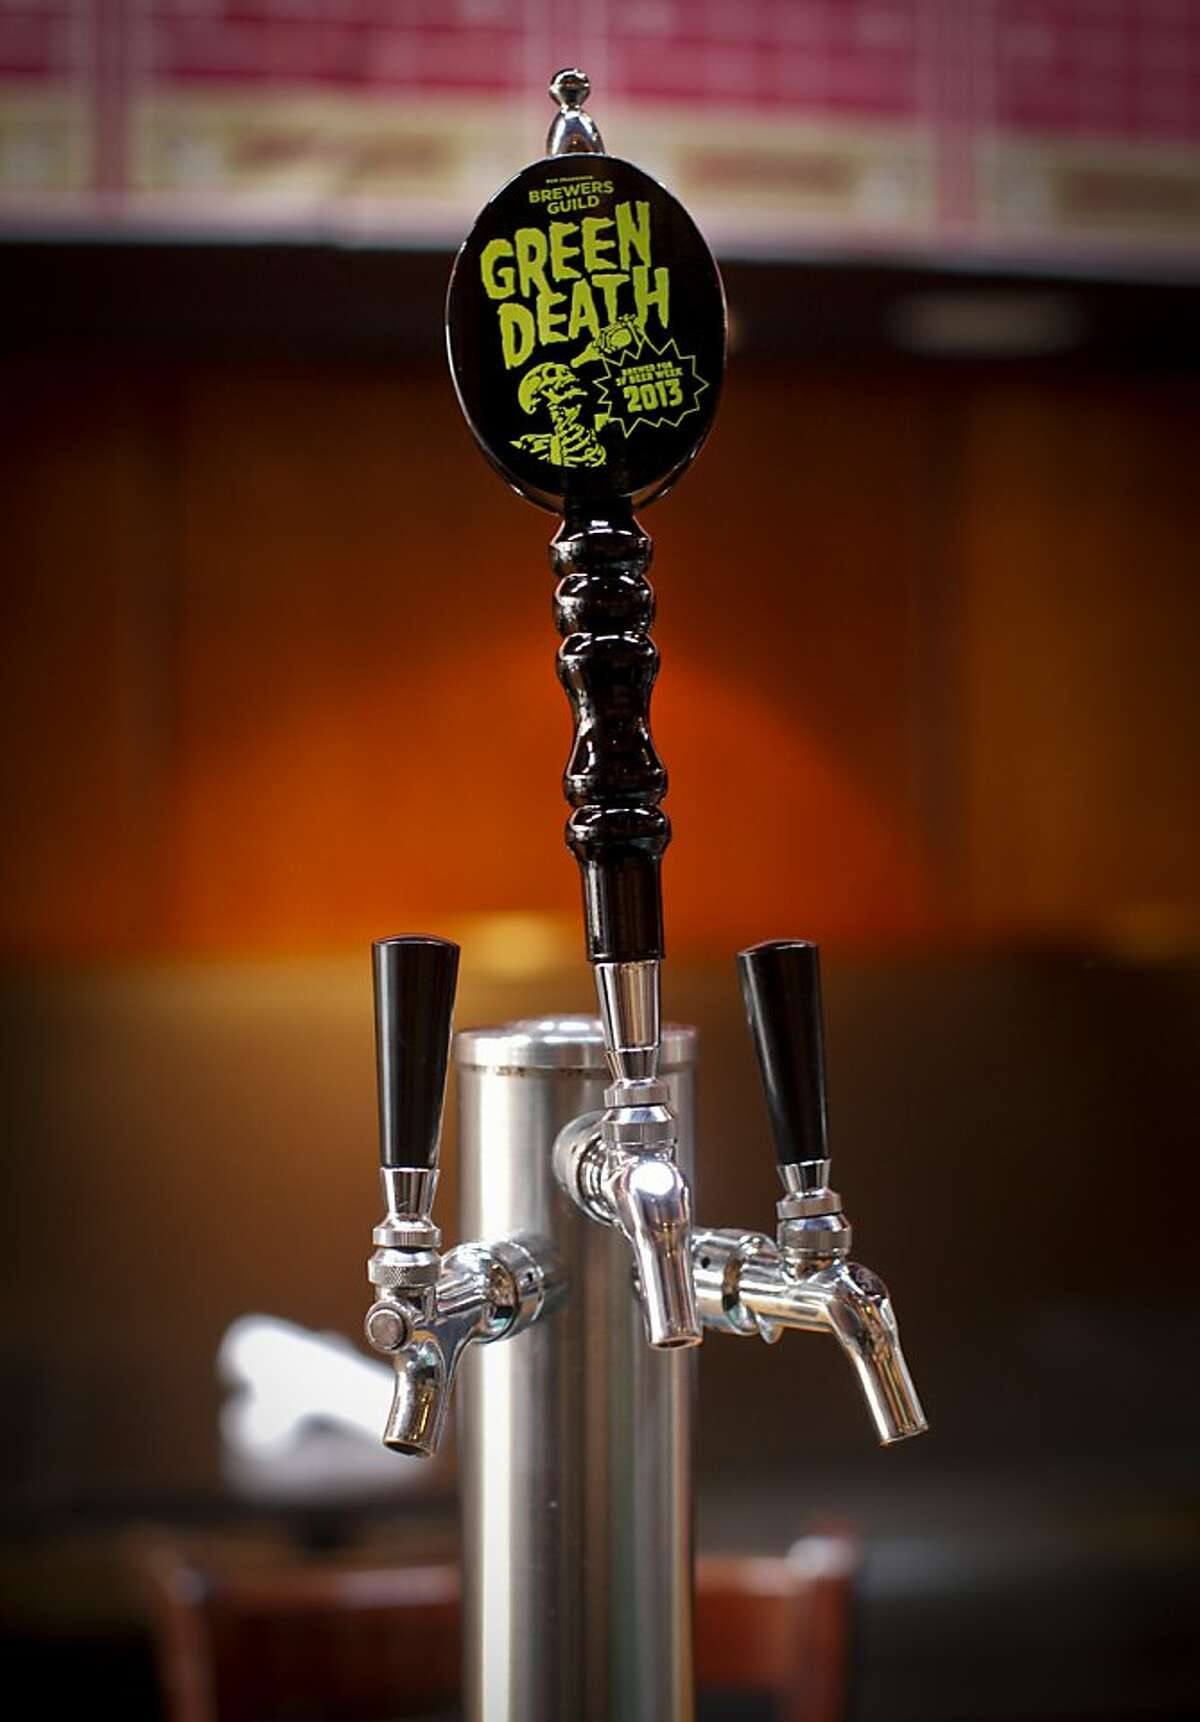 Green Death malt liquor has a special tap handle at Social Kitchen & Brewery in S.F.